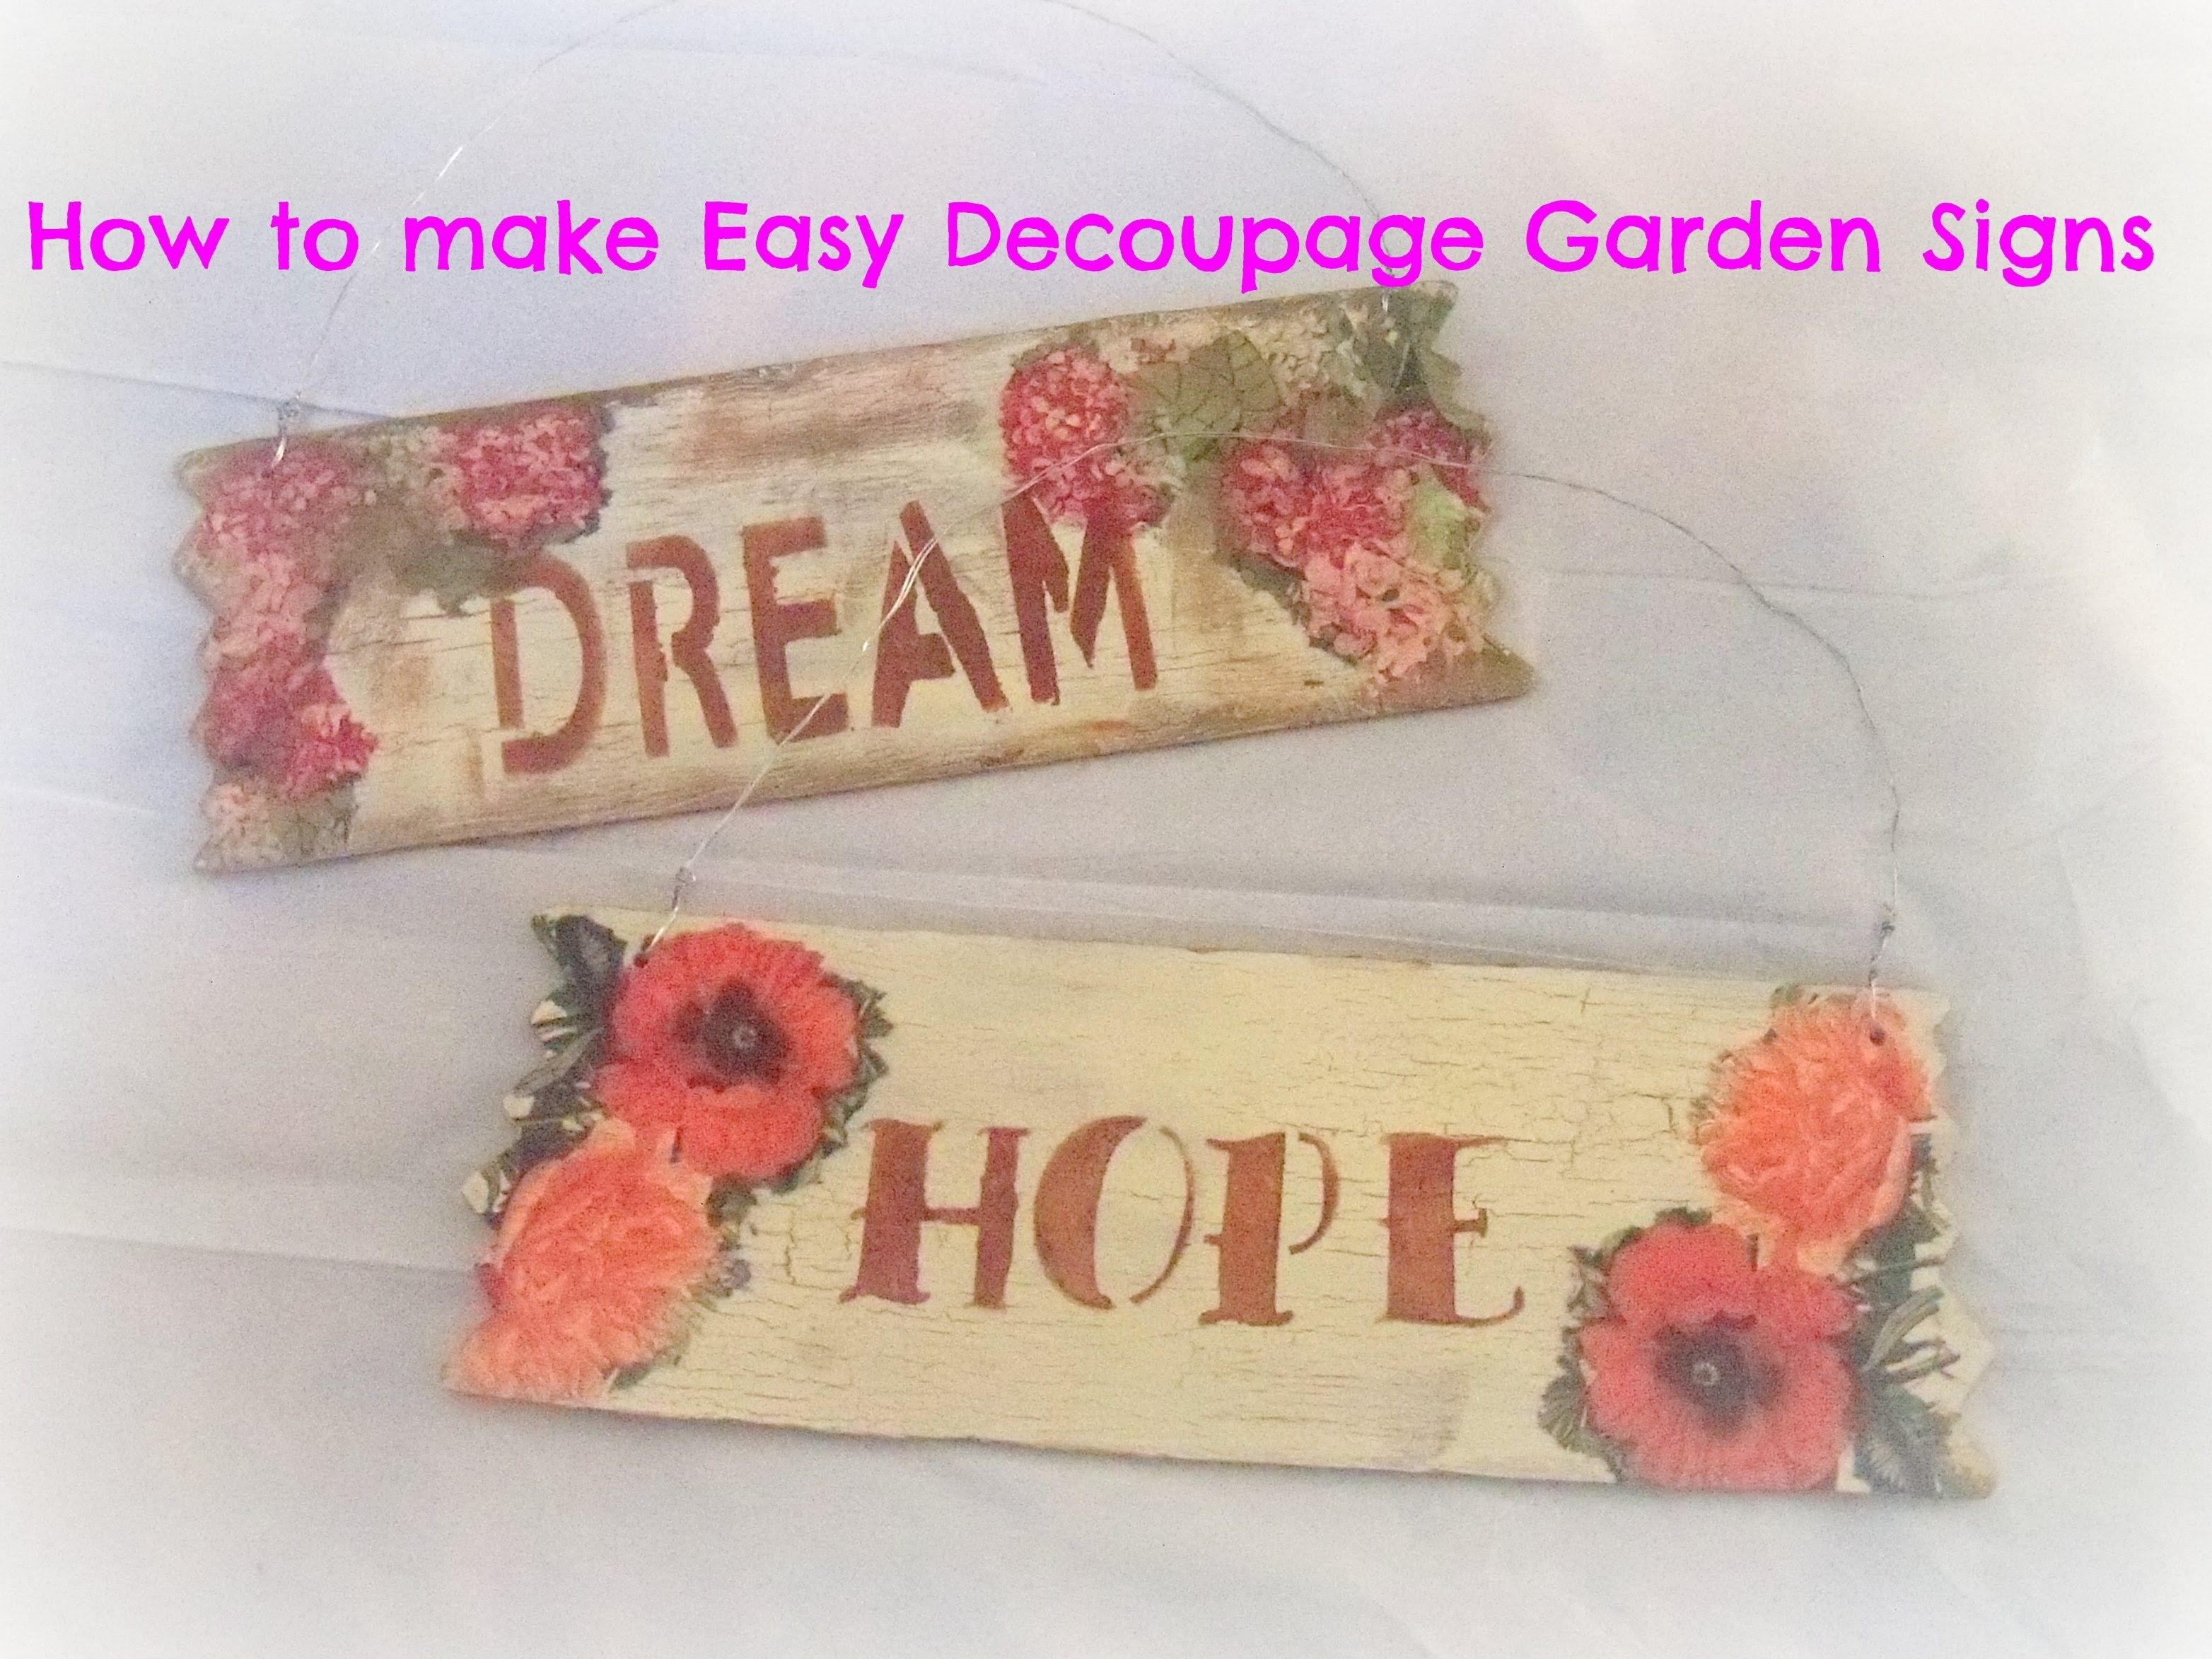 How to make decoupage wood garden signs. Tutorial.How to